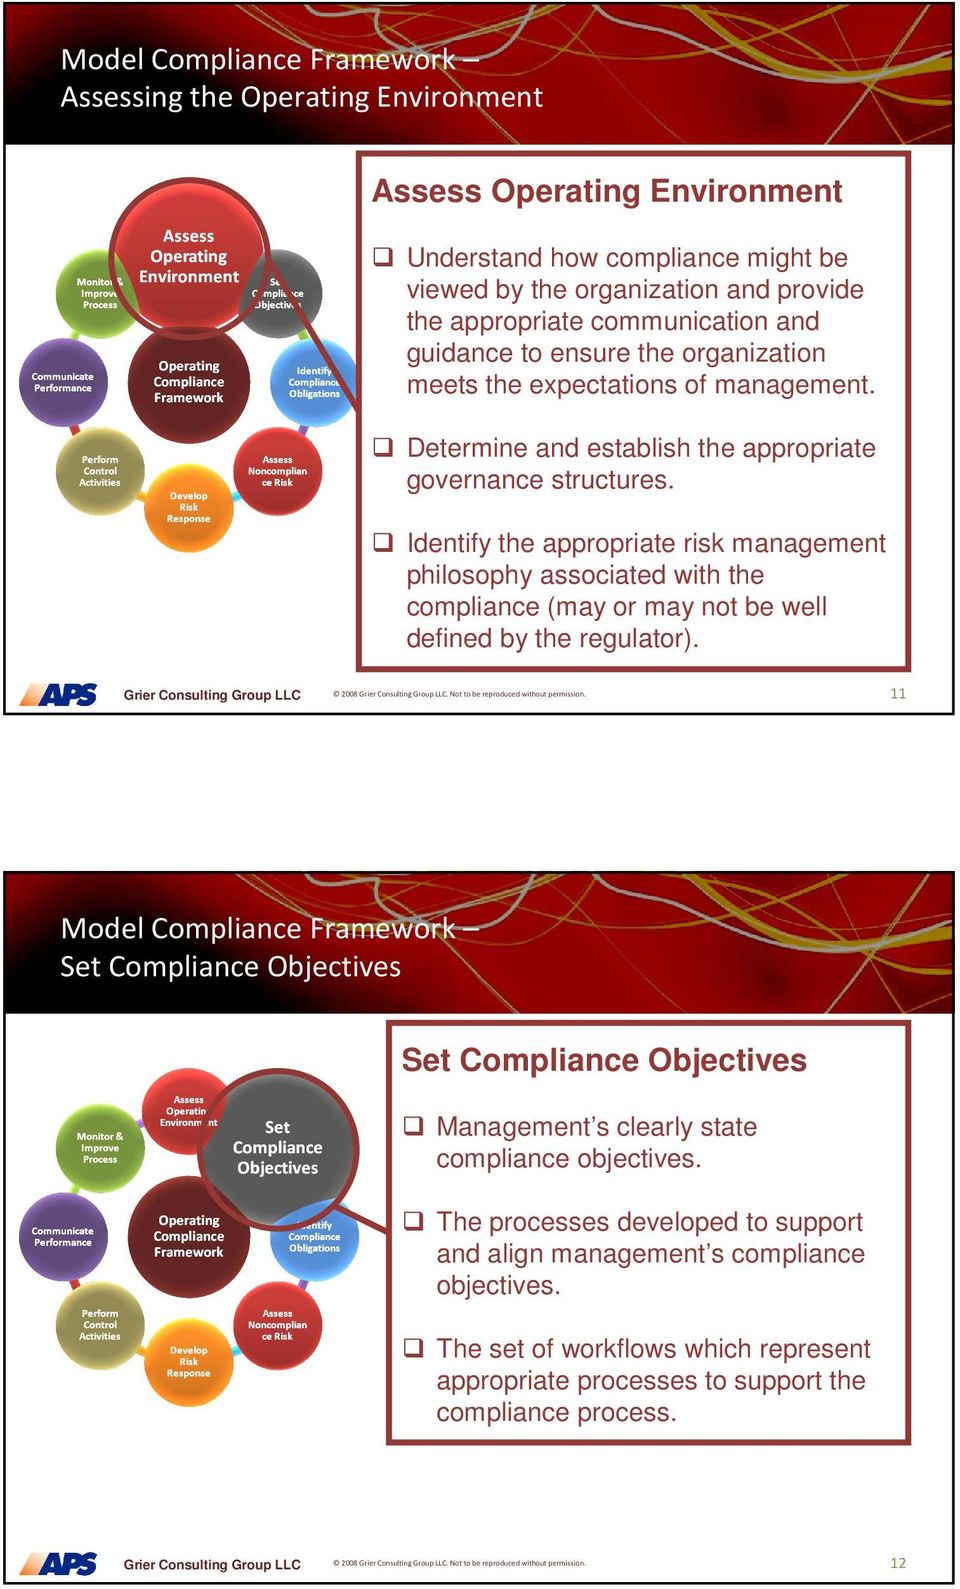 Identify the appropriate risk management philosophy associated with the compliance (may or may not be well defined by the regulator). 2008. Not to be reproduced without permission.